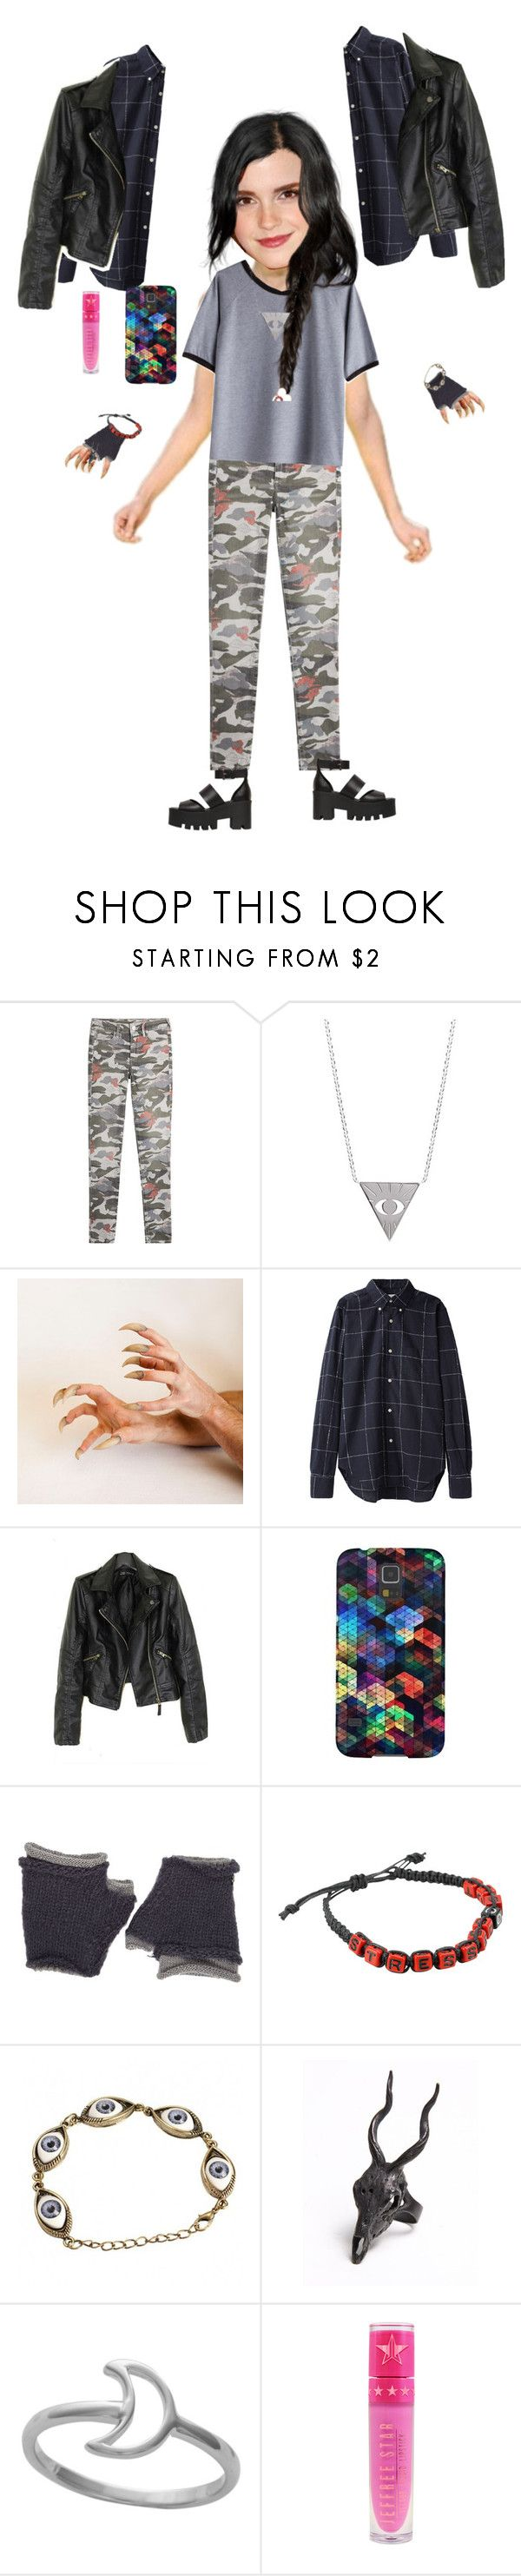 """""""Sammi McCall's basic fight training look (for becoming a hunter)"""" by samtiritilli on Polyvore featuring True Religion, Emma Watson, Venom, Our Legacy, Wooden Ships, Hot Topic, LAS Jewelry, Midsummer Star, Jeffree Star and Windsor Smith"""